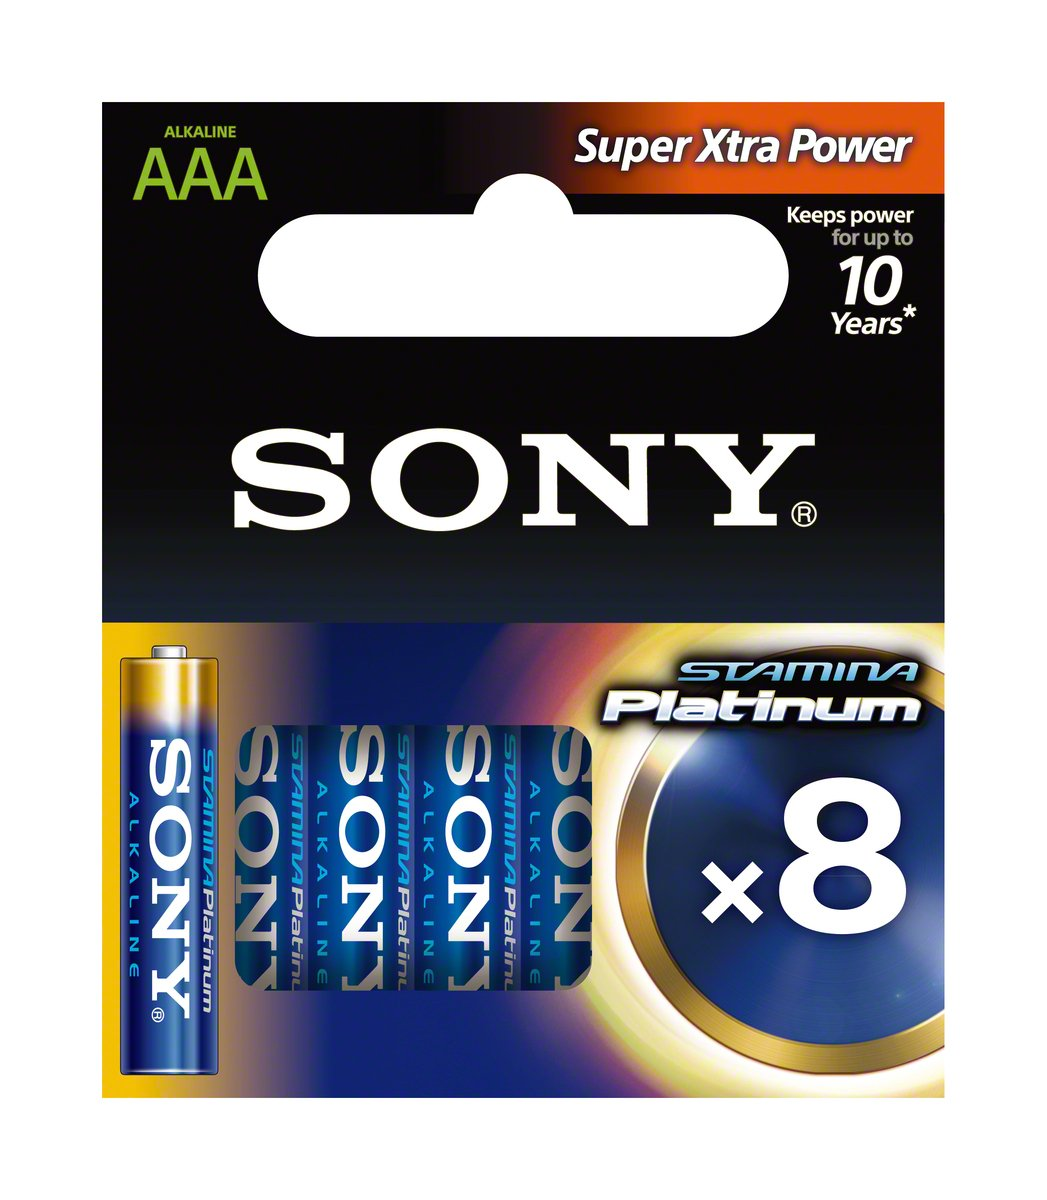 Sony 8x AAA Stamina Platinum Alkaline 1.5V non-rechargeable battery - non-rechargeable batteries (Al